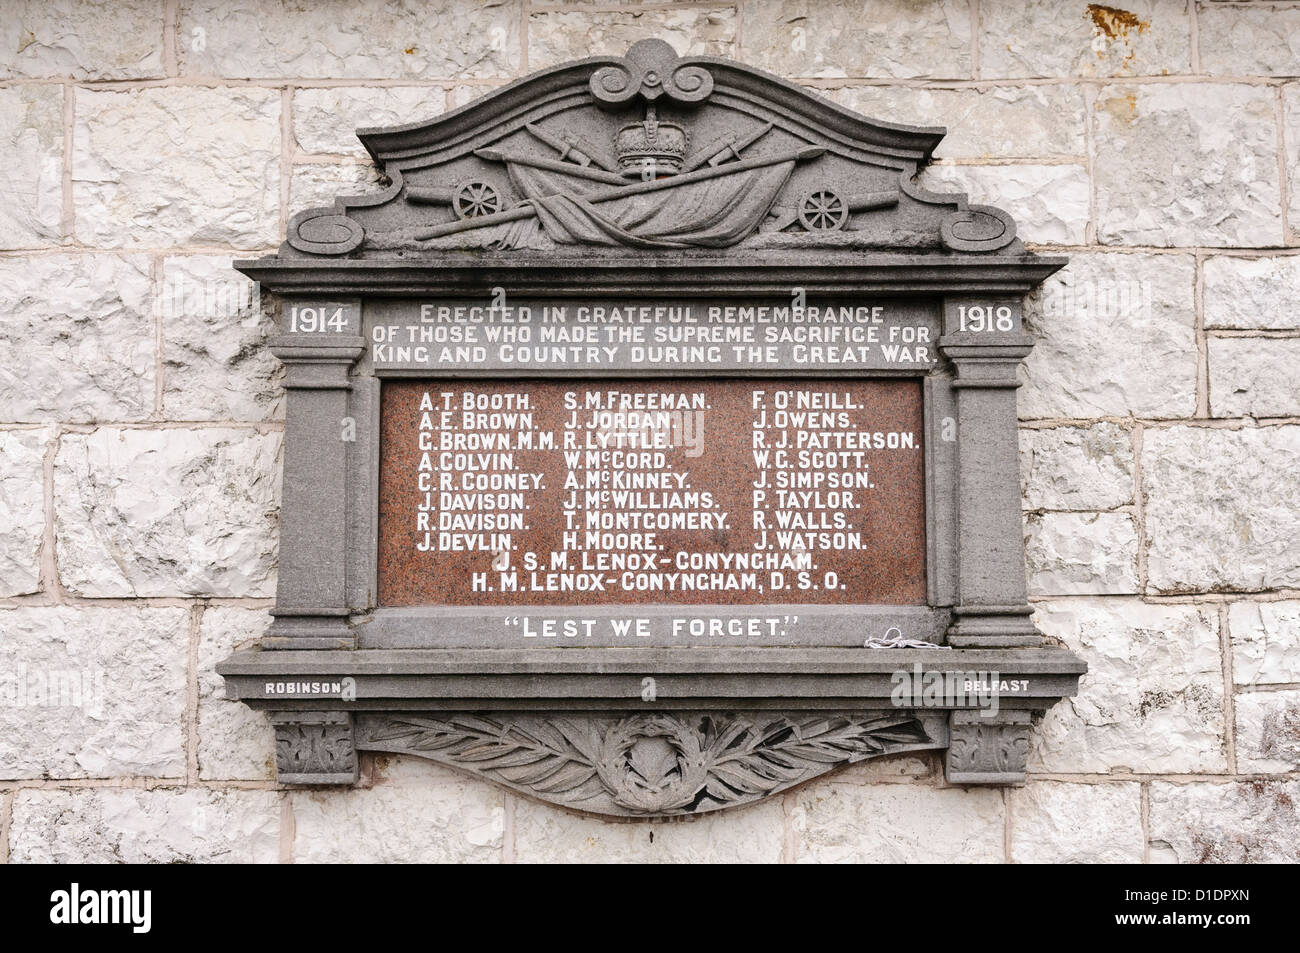 Memorial for soldiers who died in the First World War - Stock Image